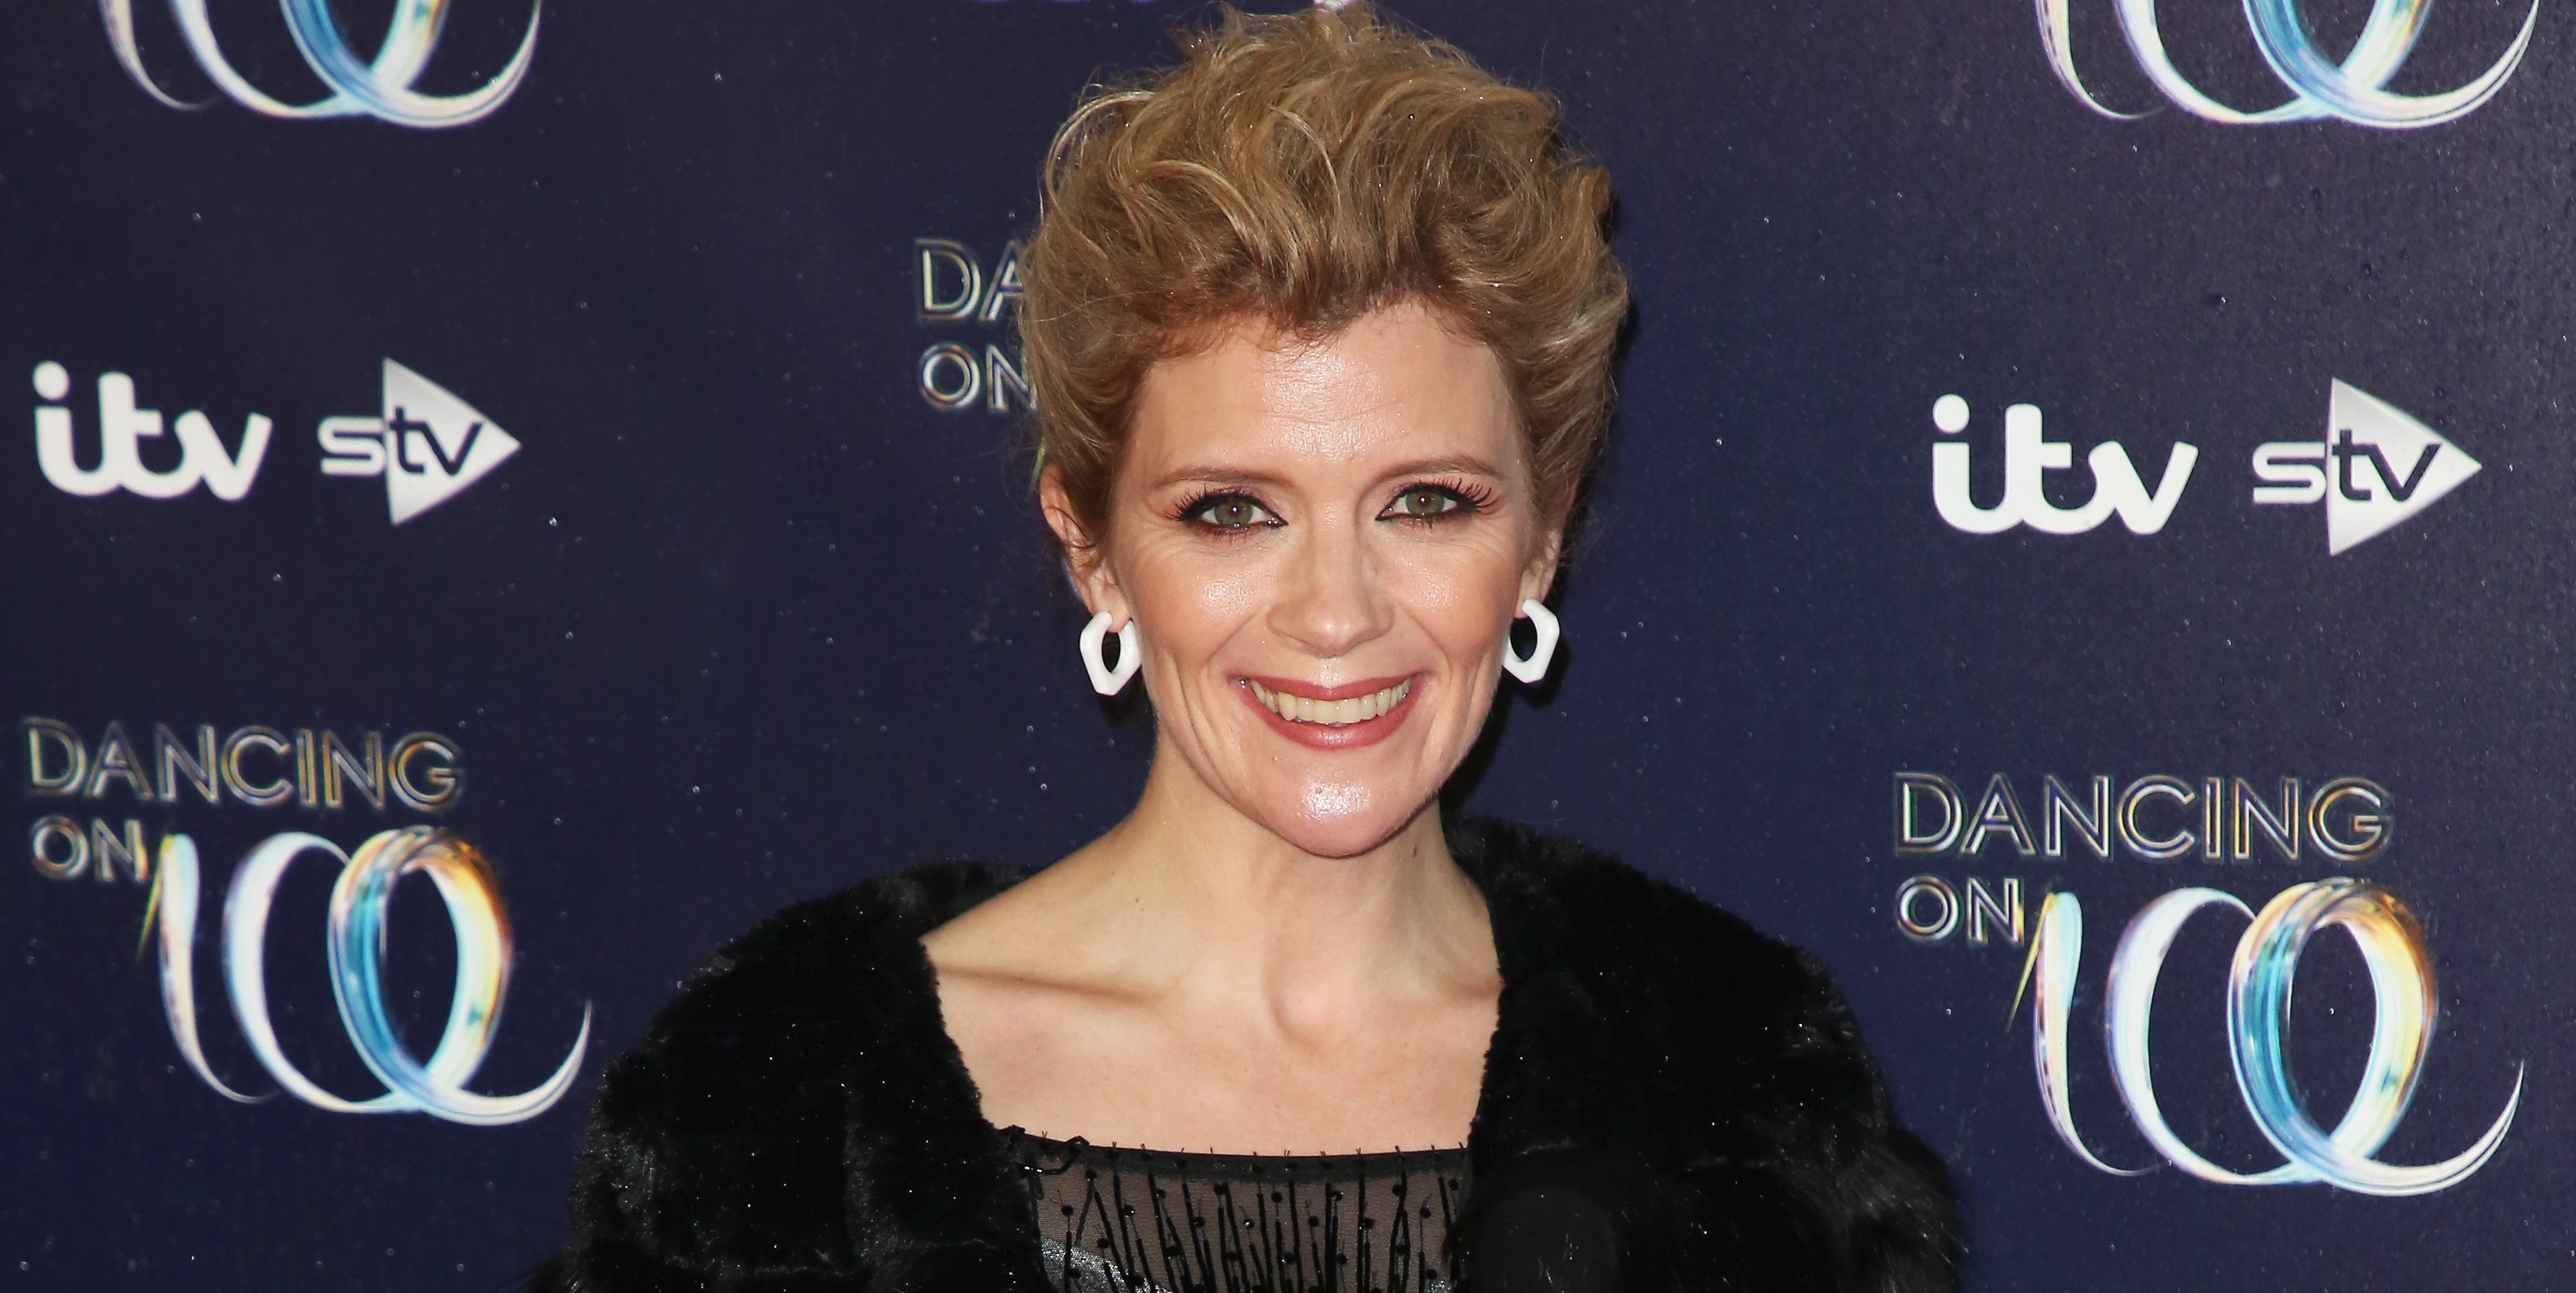 Coronation Street's Jane Danson shares an emotional tribute for Baby Loss Awareness after revealing heartache of her own miscarriage